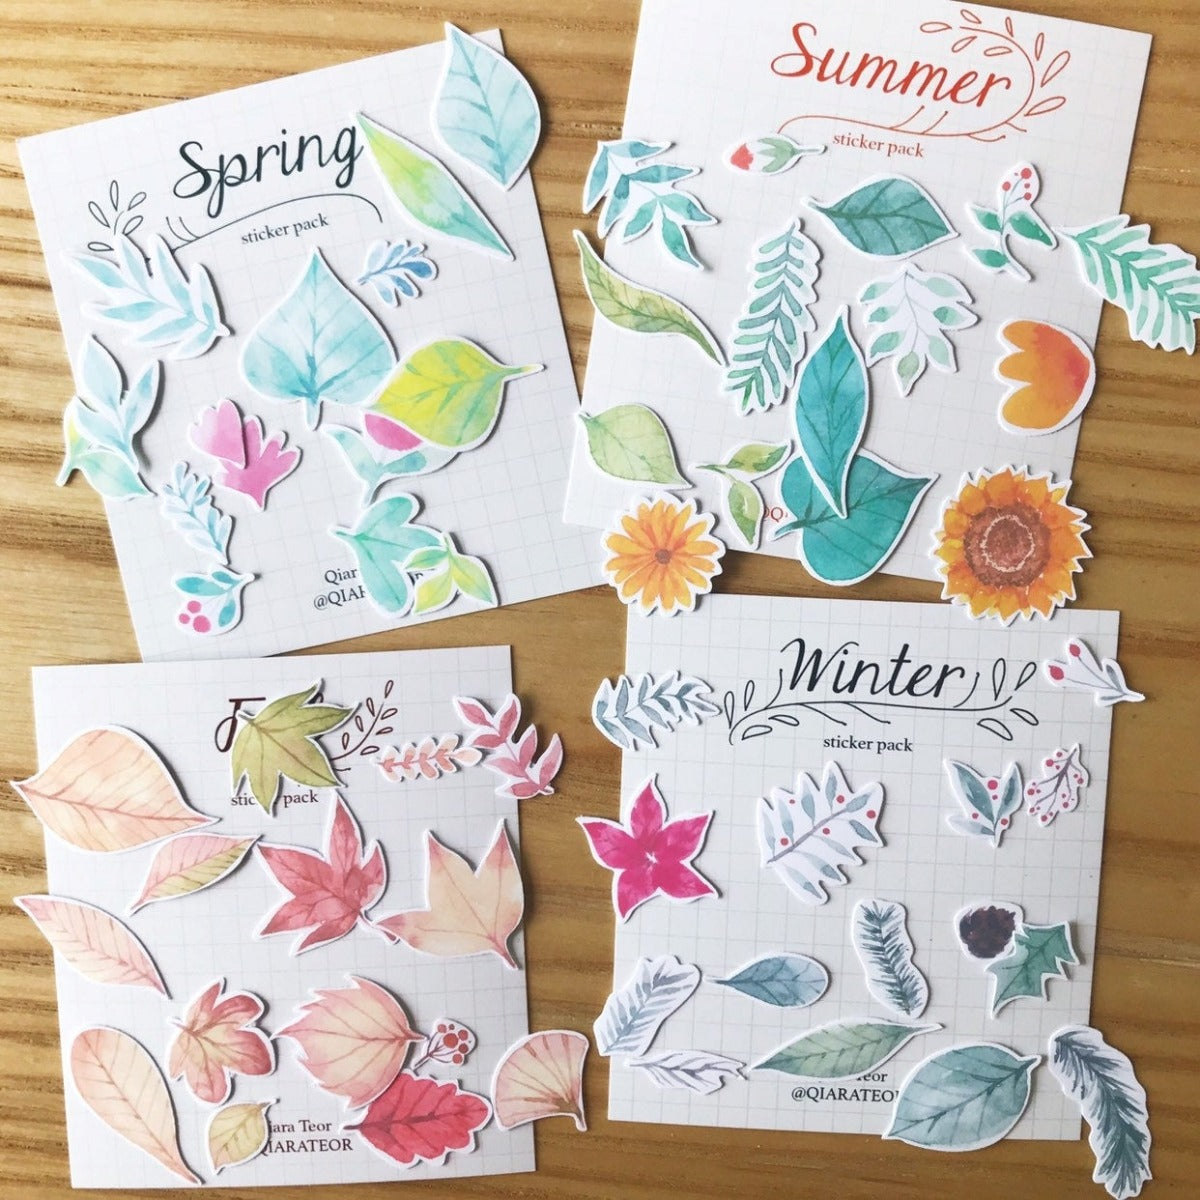 Qiara's Summer Sticker Pack